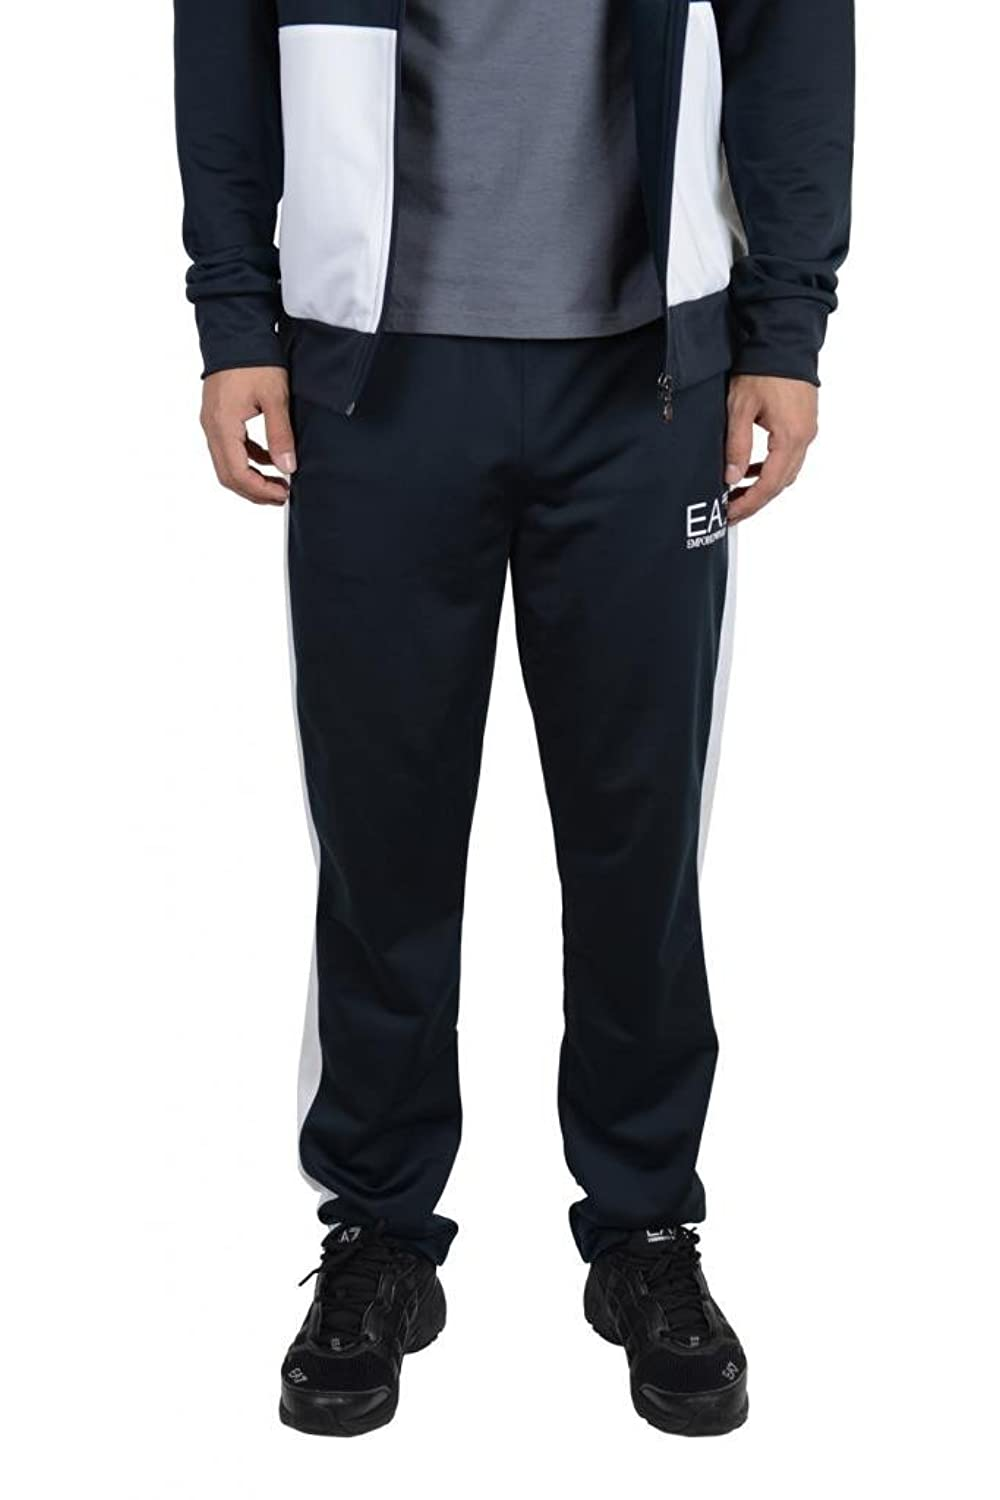 Emporio Armani EA7 Train Tri Dark Blue Track Sweat Pants муниципальное право конспект лекций